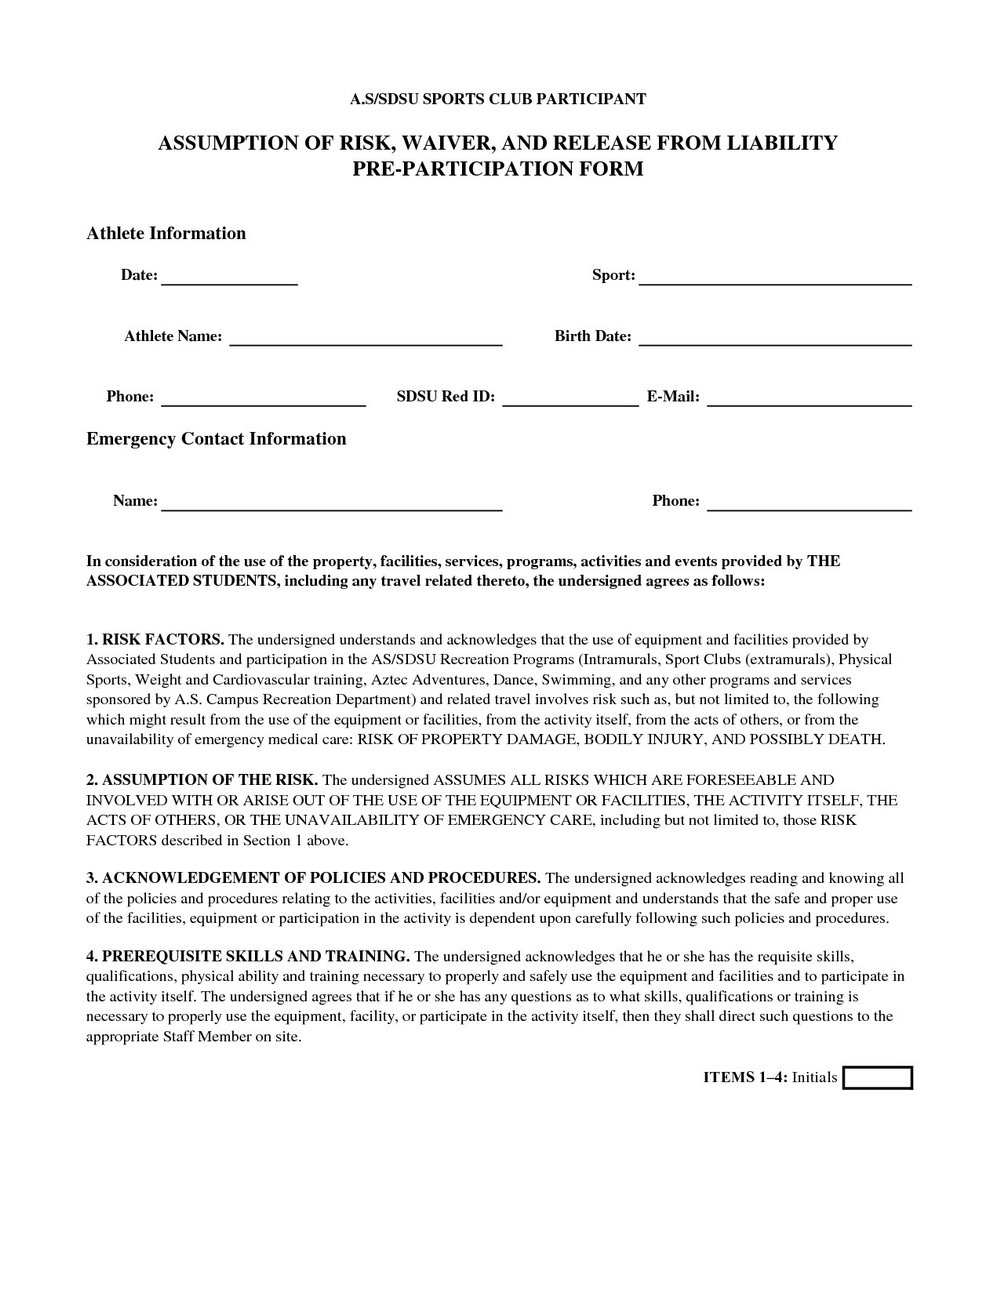 Liability Waiver Form Template Canada